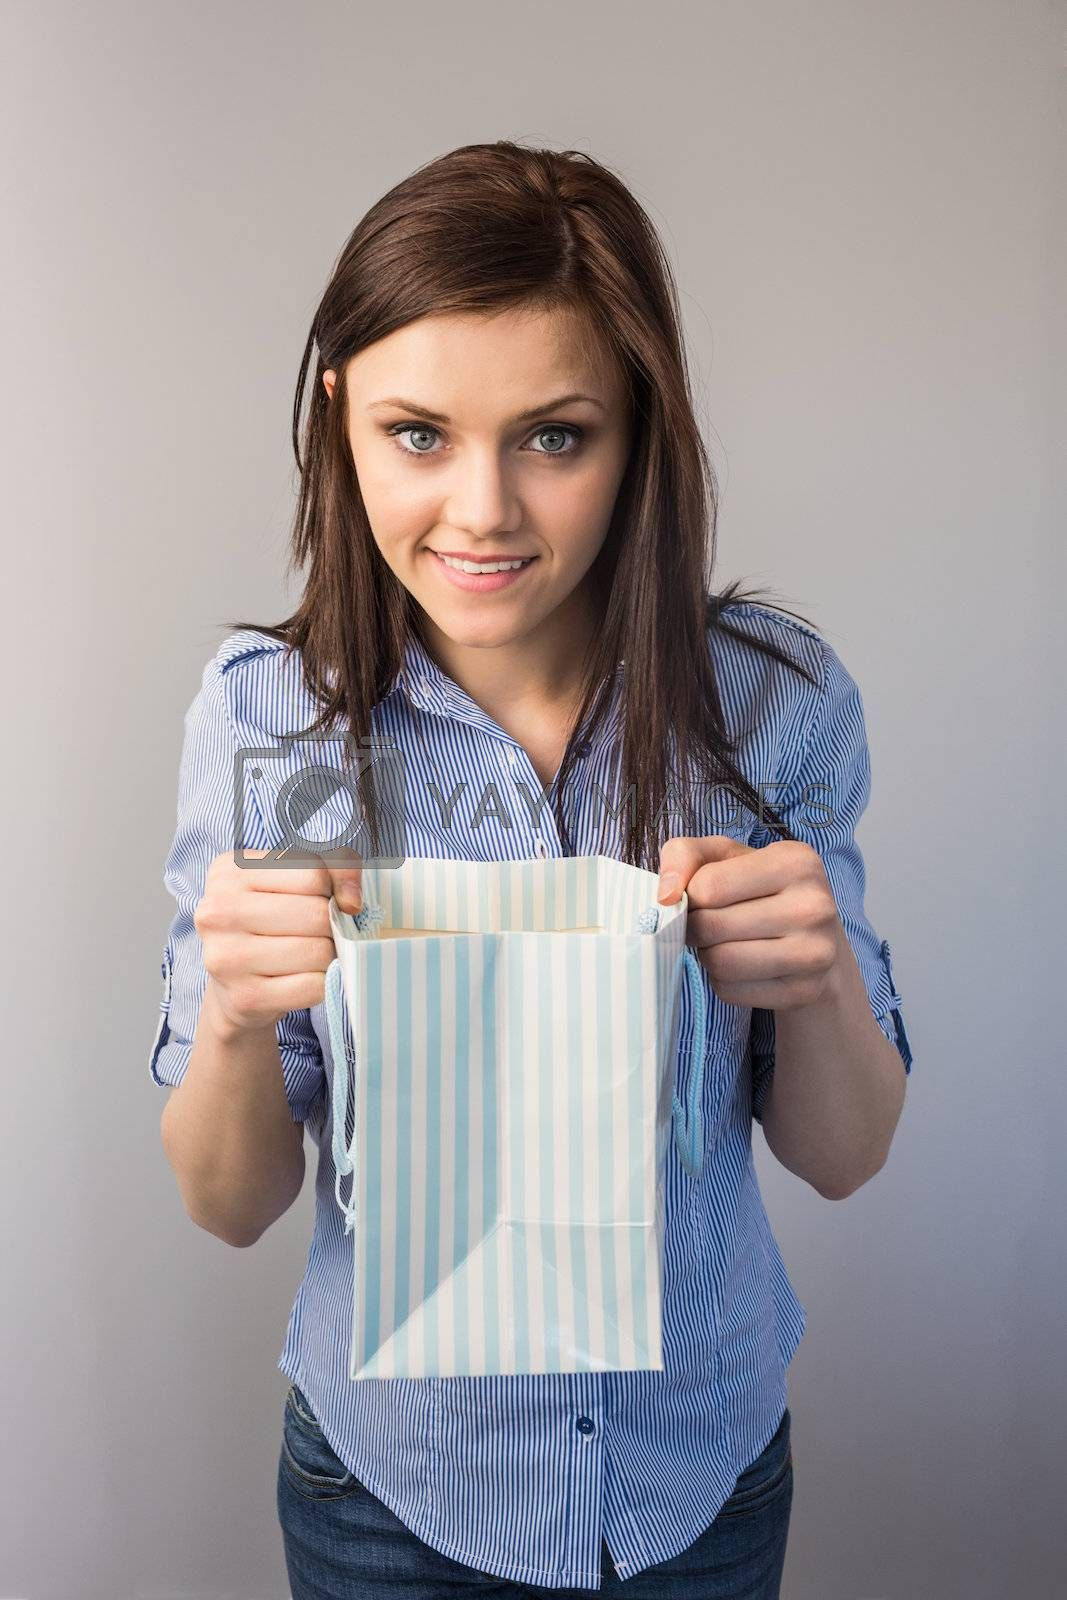 Cheerful pretty brunette receiving a present by Wavebreakmedia